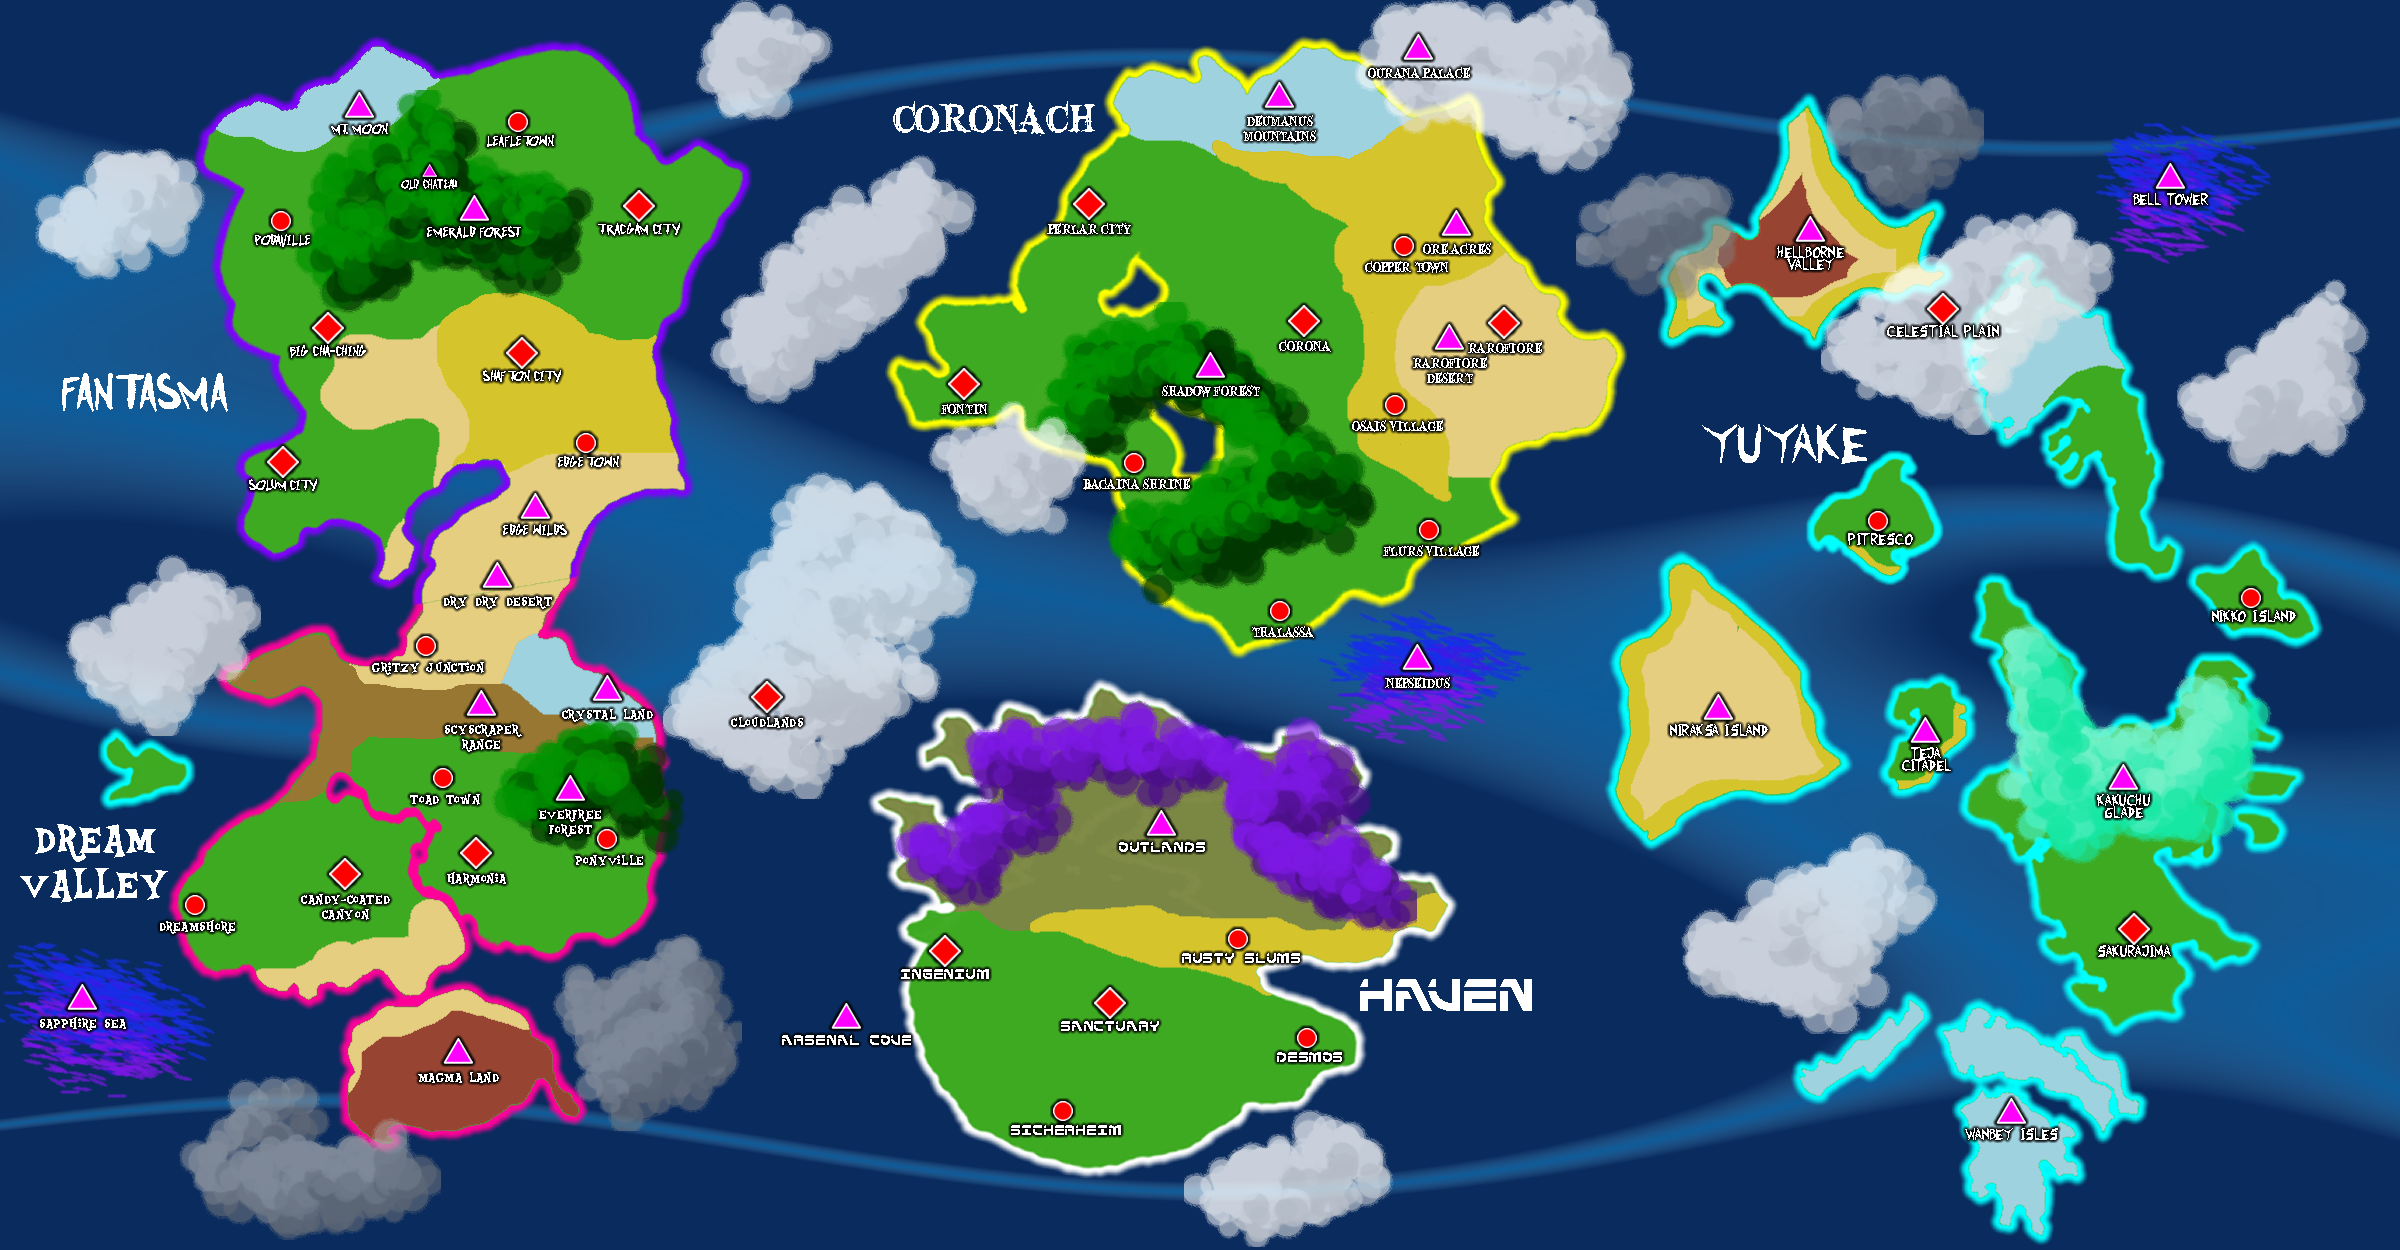 World map of fusion fantasy 2 by umsauthorlava on deviantart world map of fusion fantasy 2 by umsauthorlava gumiabroncs Gallery